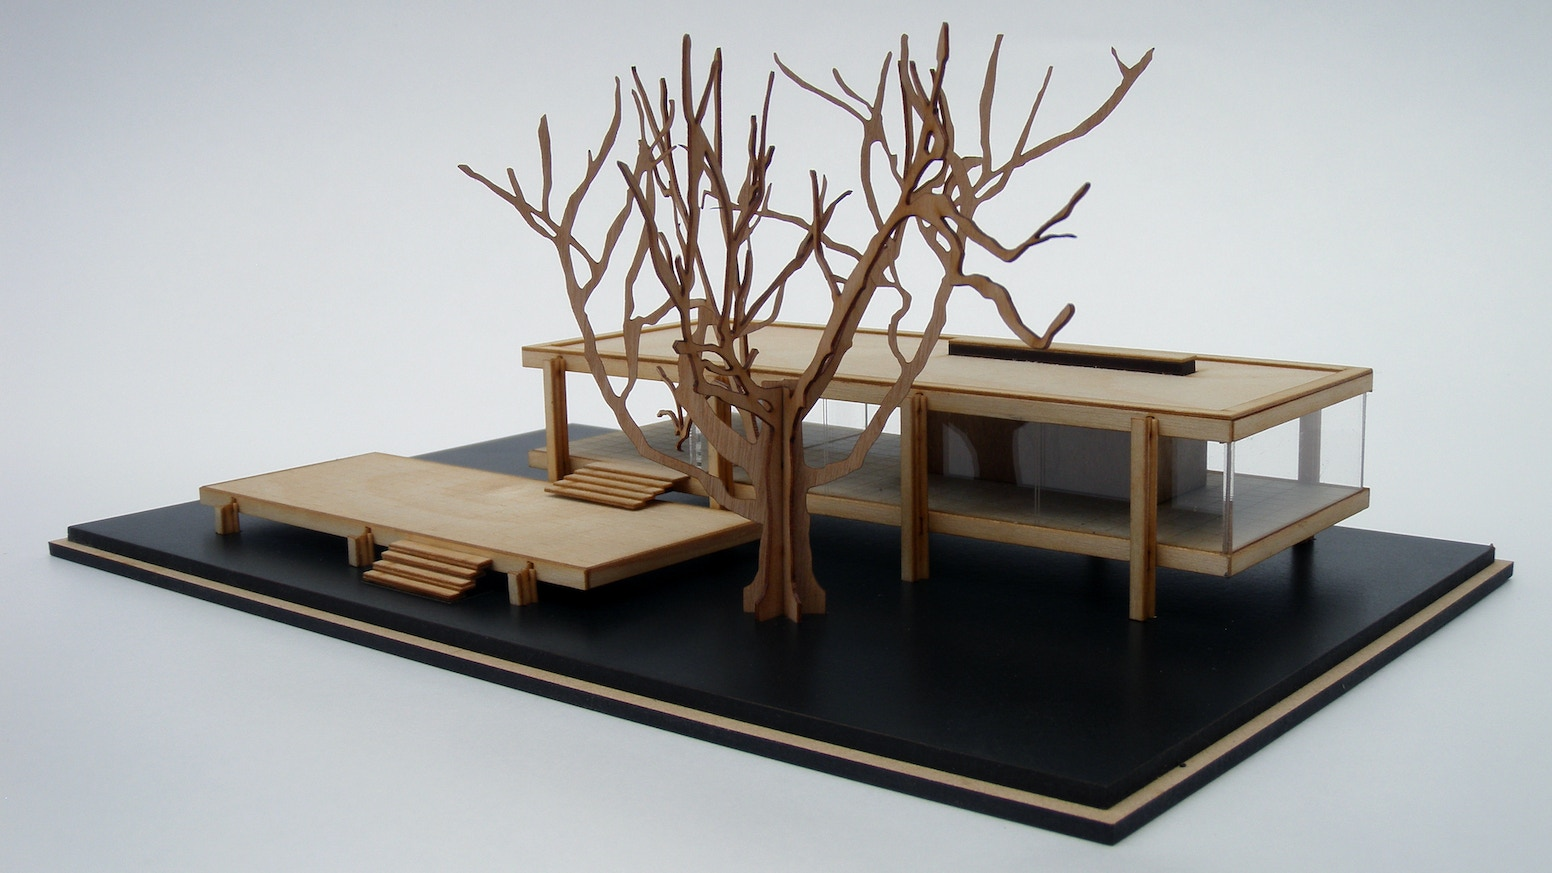 mies van de rohe s farnsworth house architectural model kit by